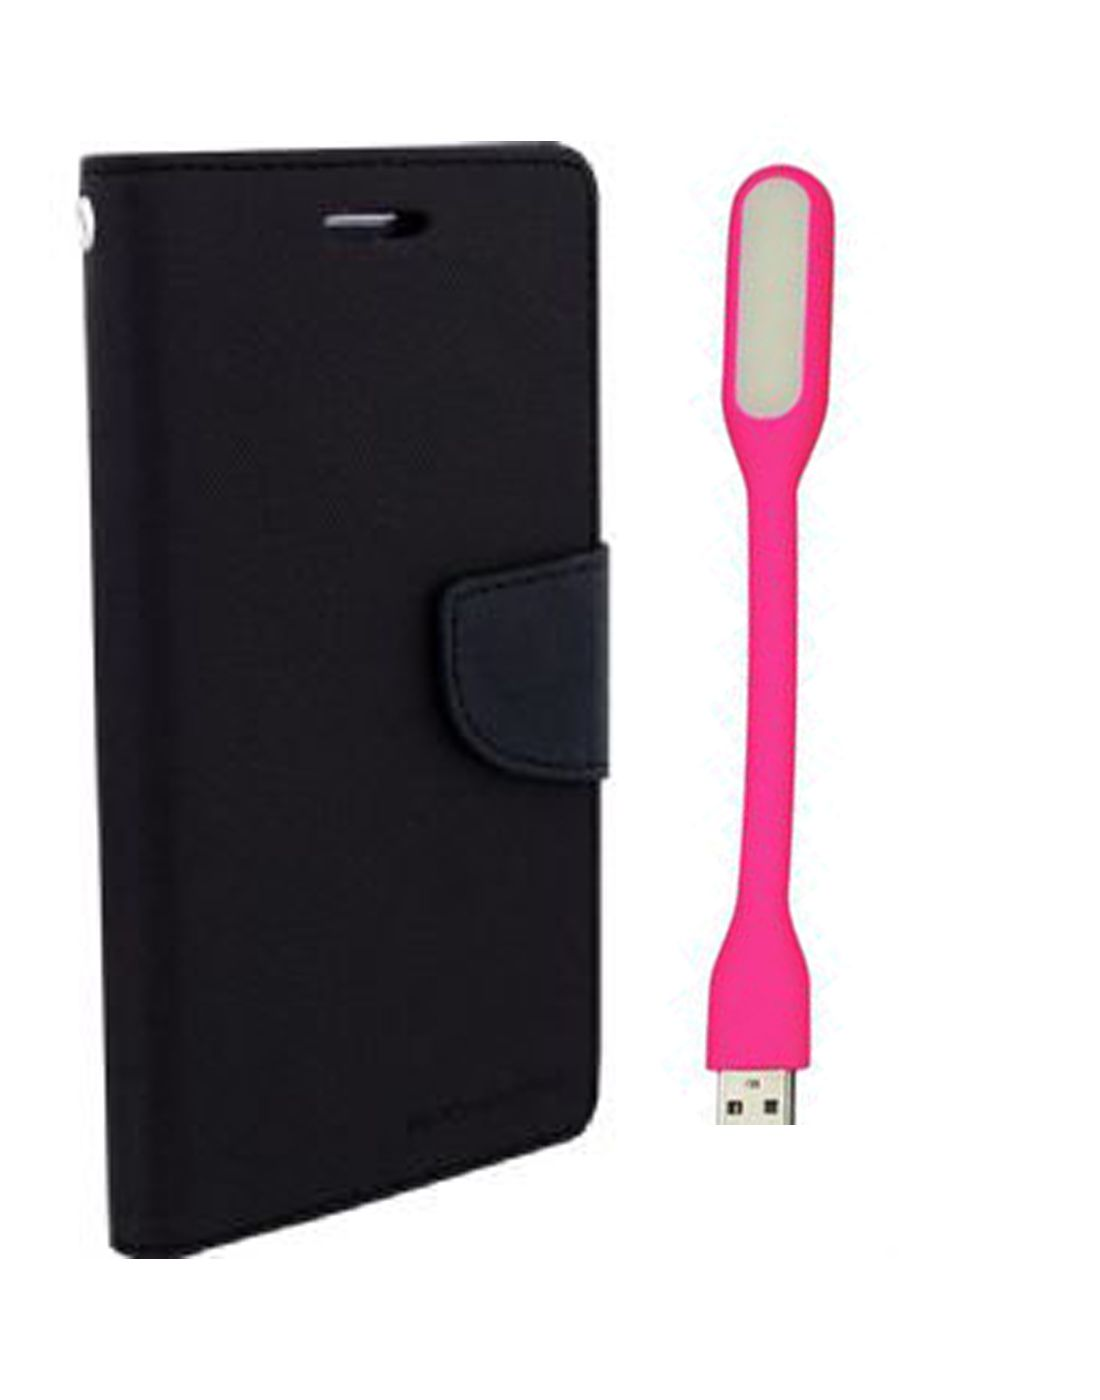 Wallet Flip Case Back Cover For Samsung E7 -(Black) + Flexible Mini LED Stick Lamp Light By Style Crome